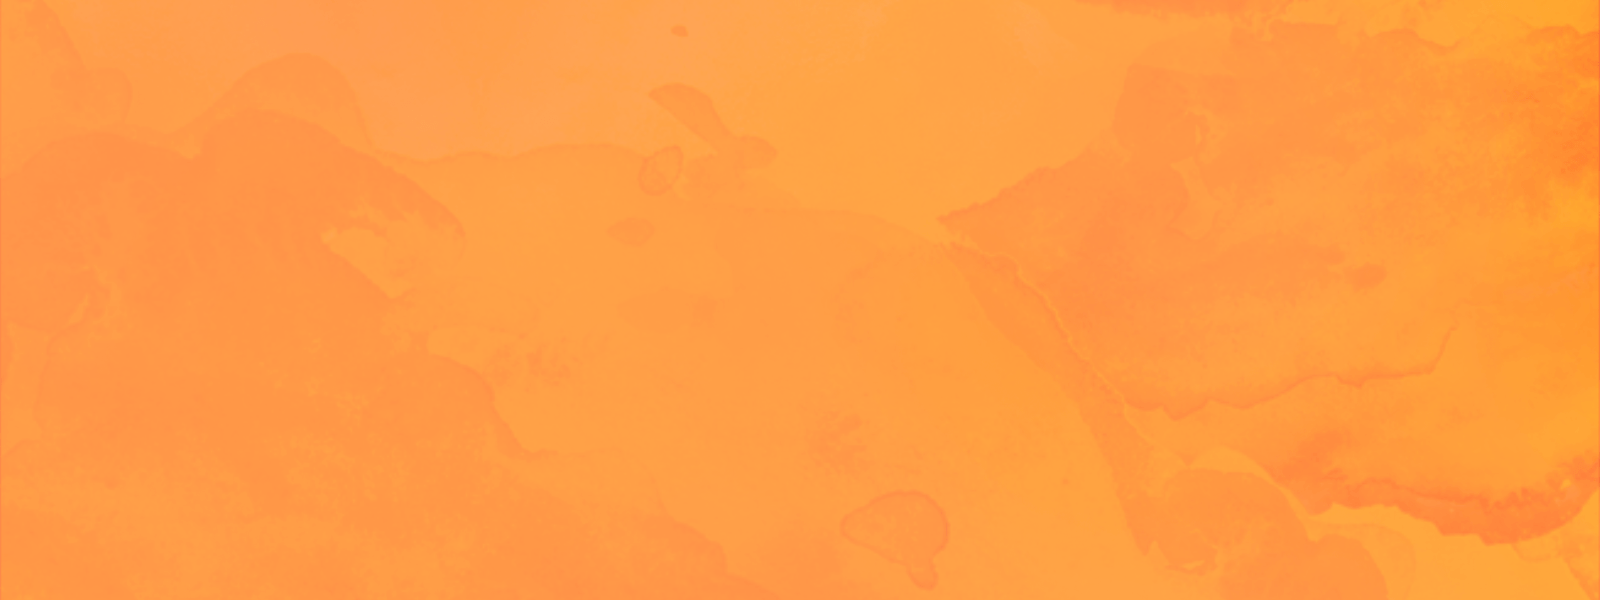 ks-headers-orange